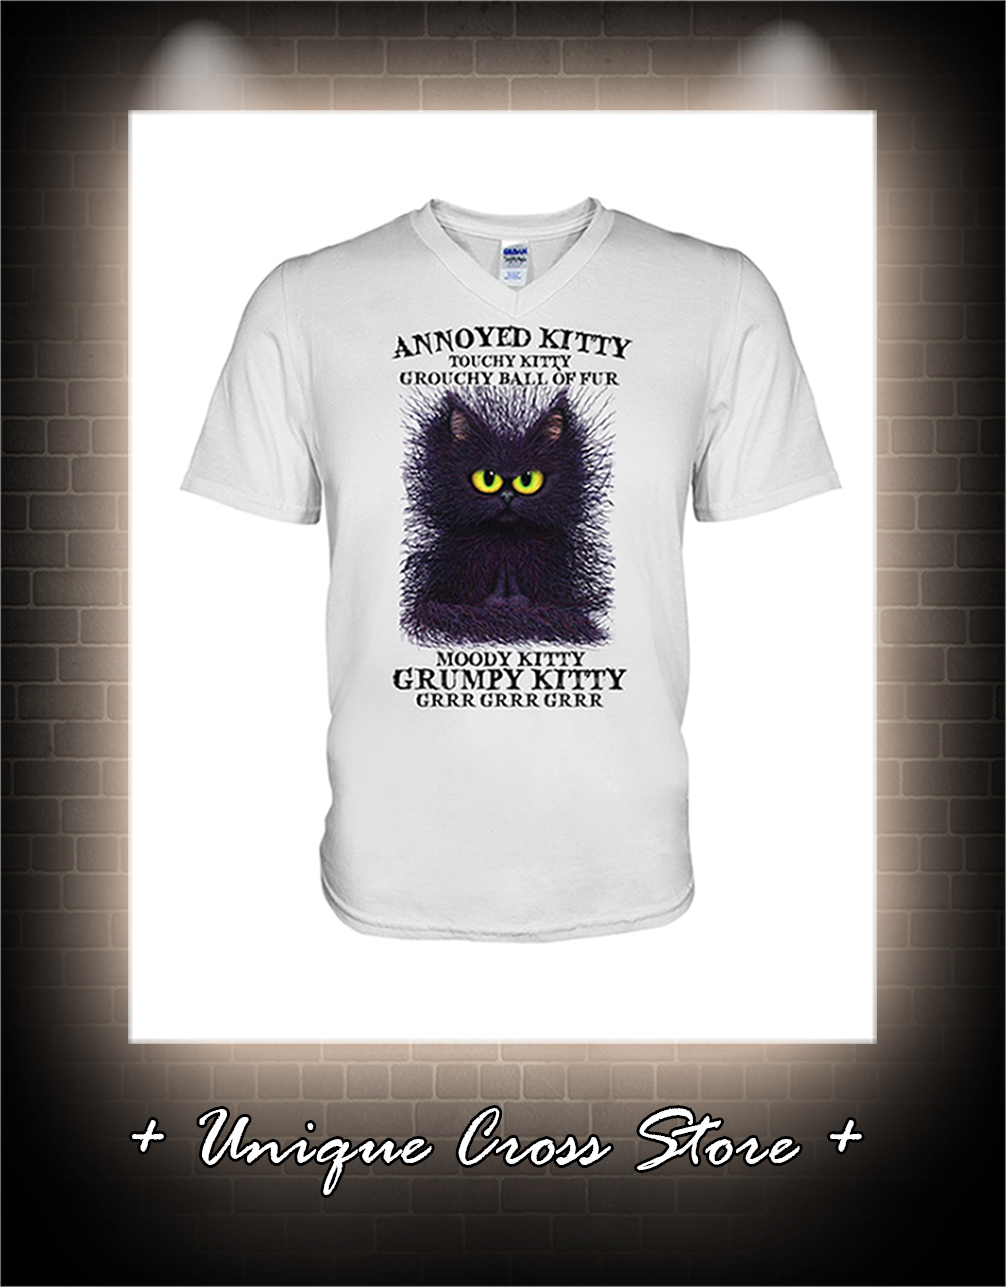 Annoyed kitty touchy kitty grouchy ball or fur moody kitty grumpy kitty grrr v-neck